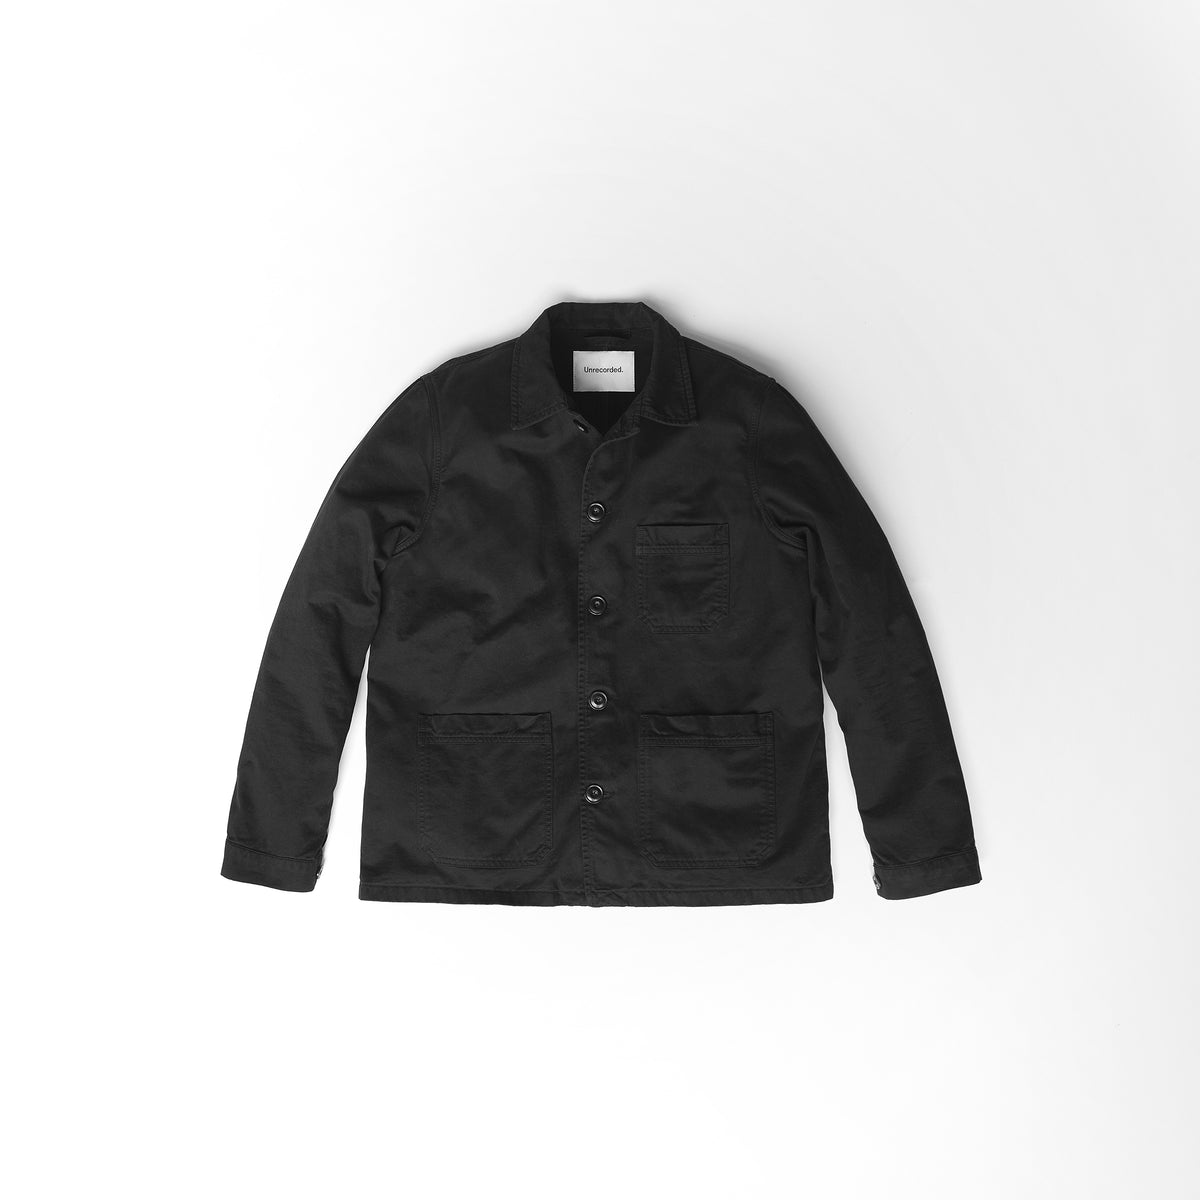 Worker Jacket in Black made from organic cotton - Alternate